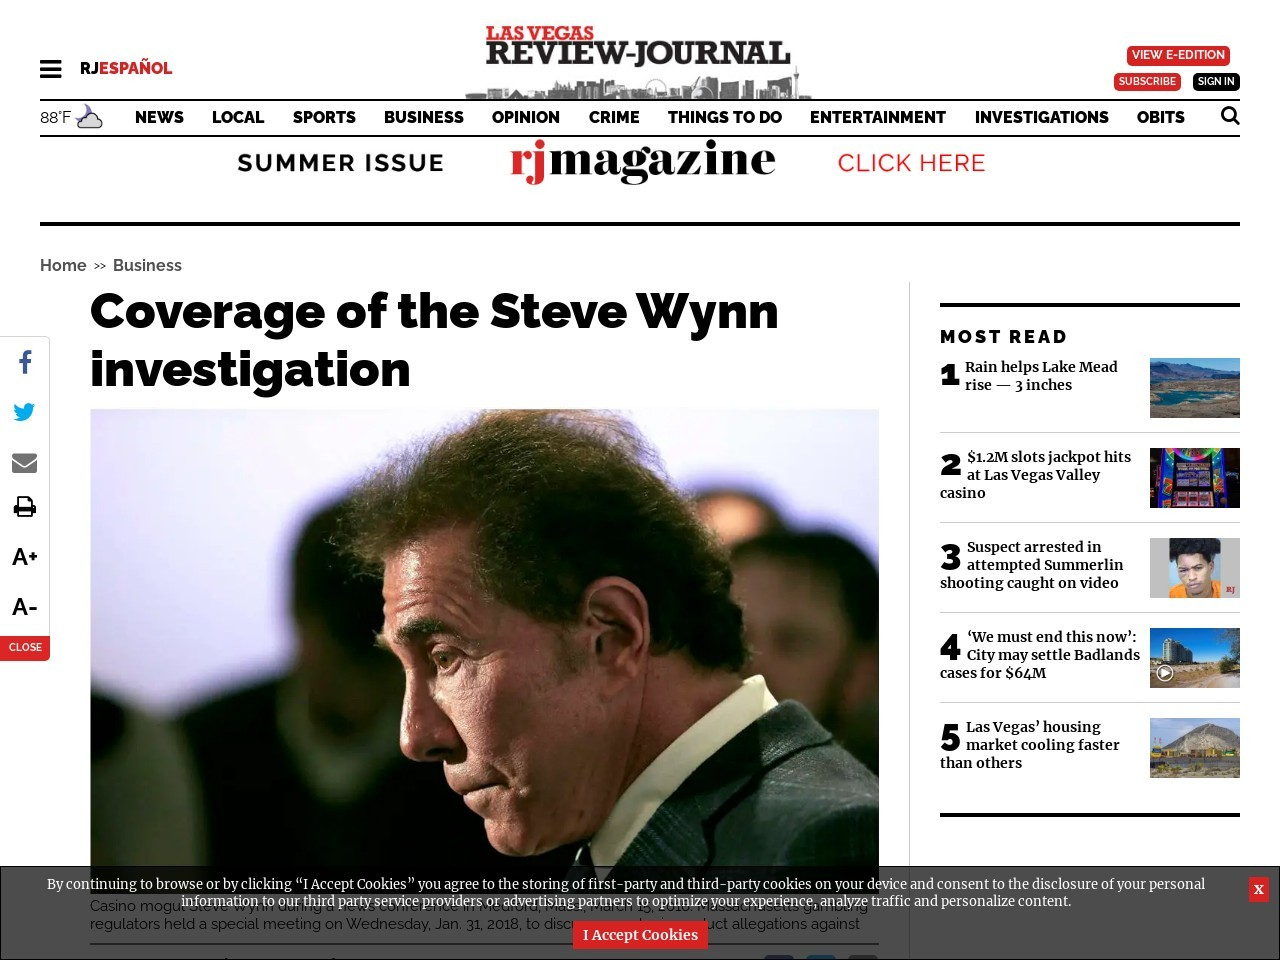 Coverage of the Steve Wynn investigation